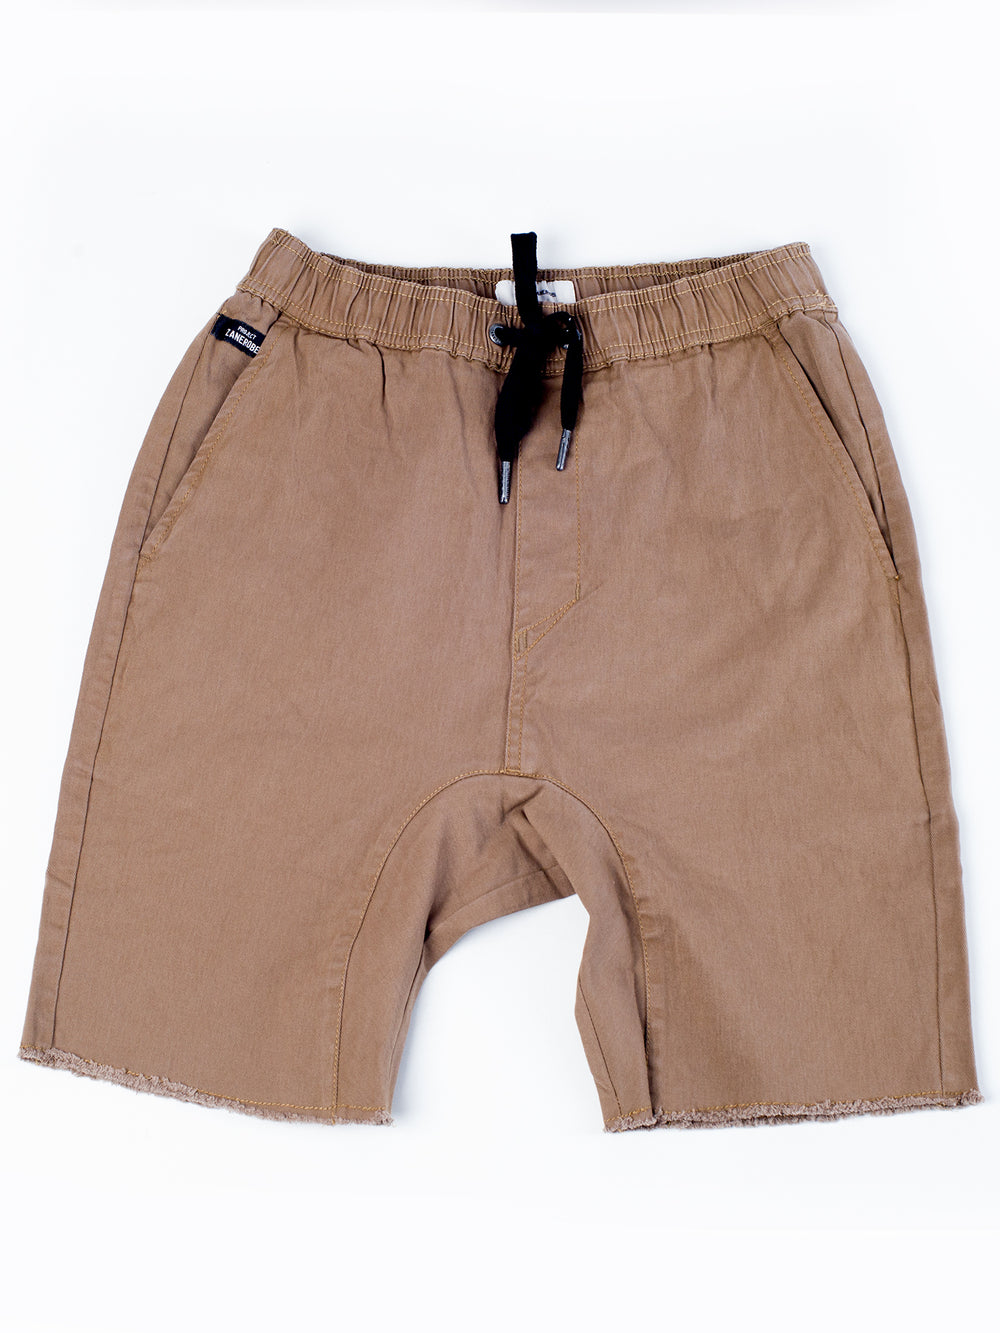 MENS SHOGUN JOGGER SHORT